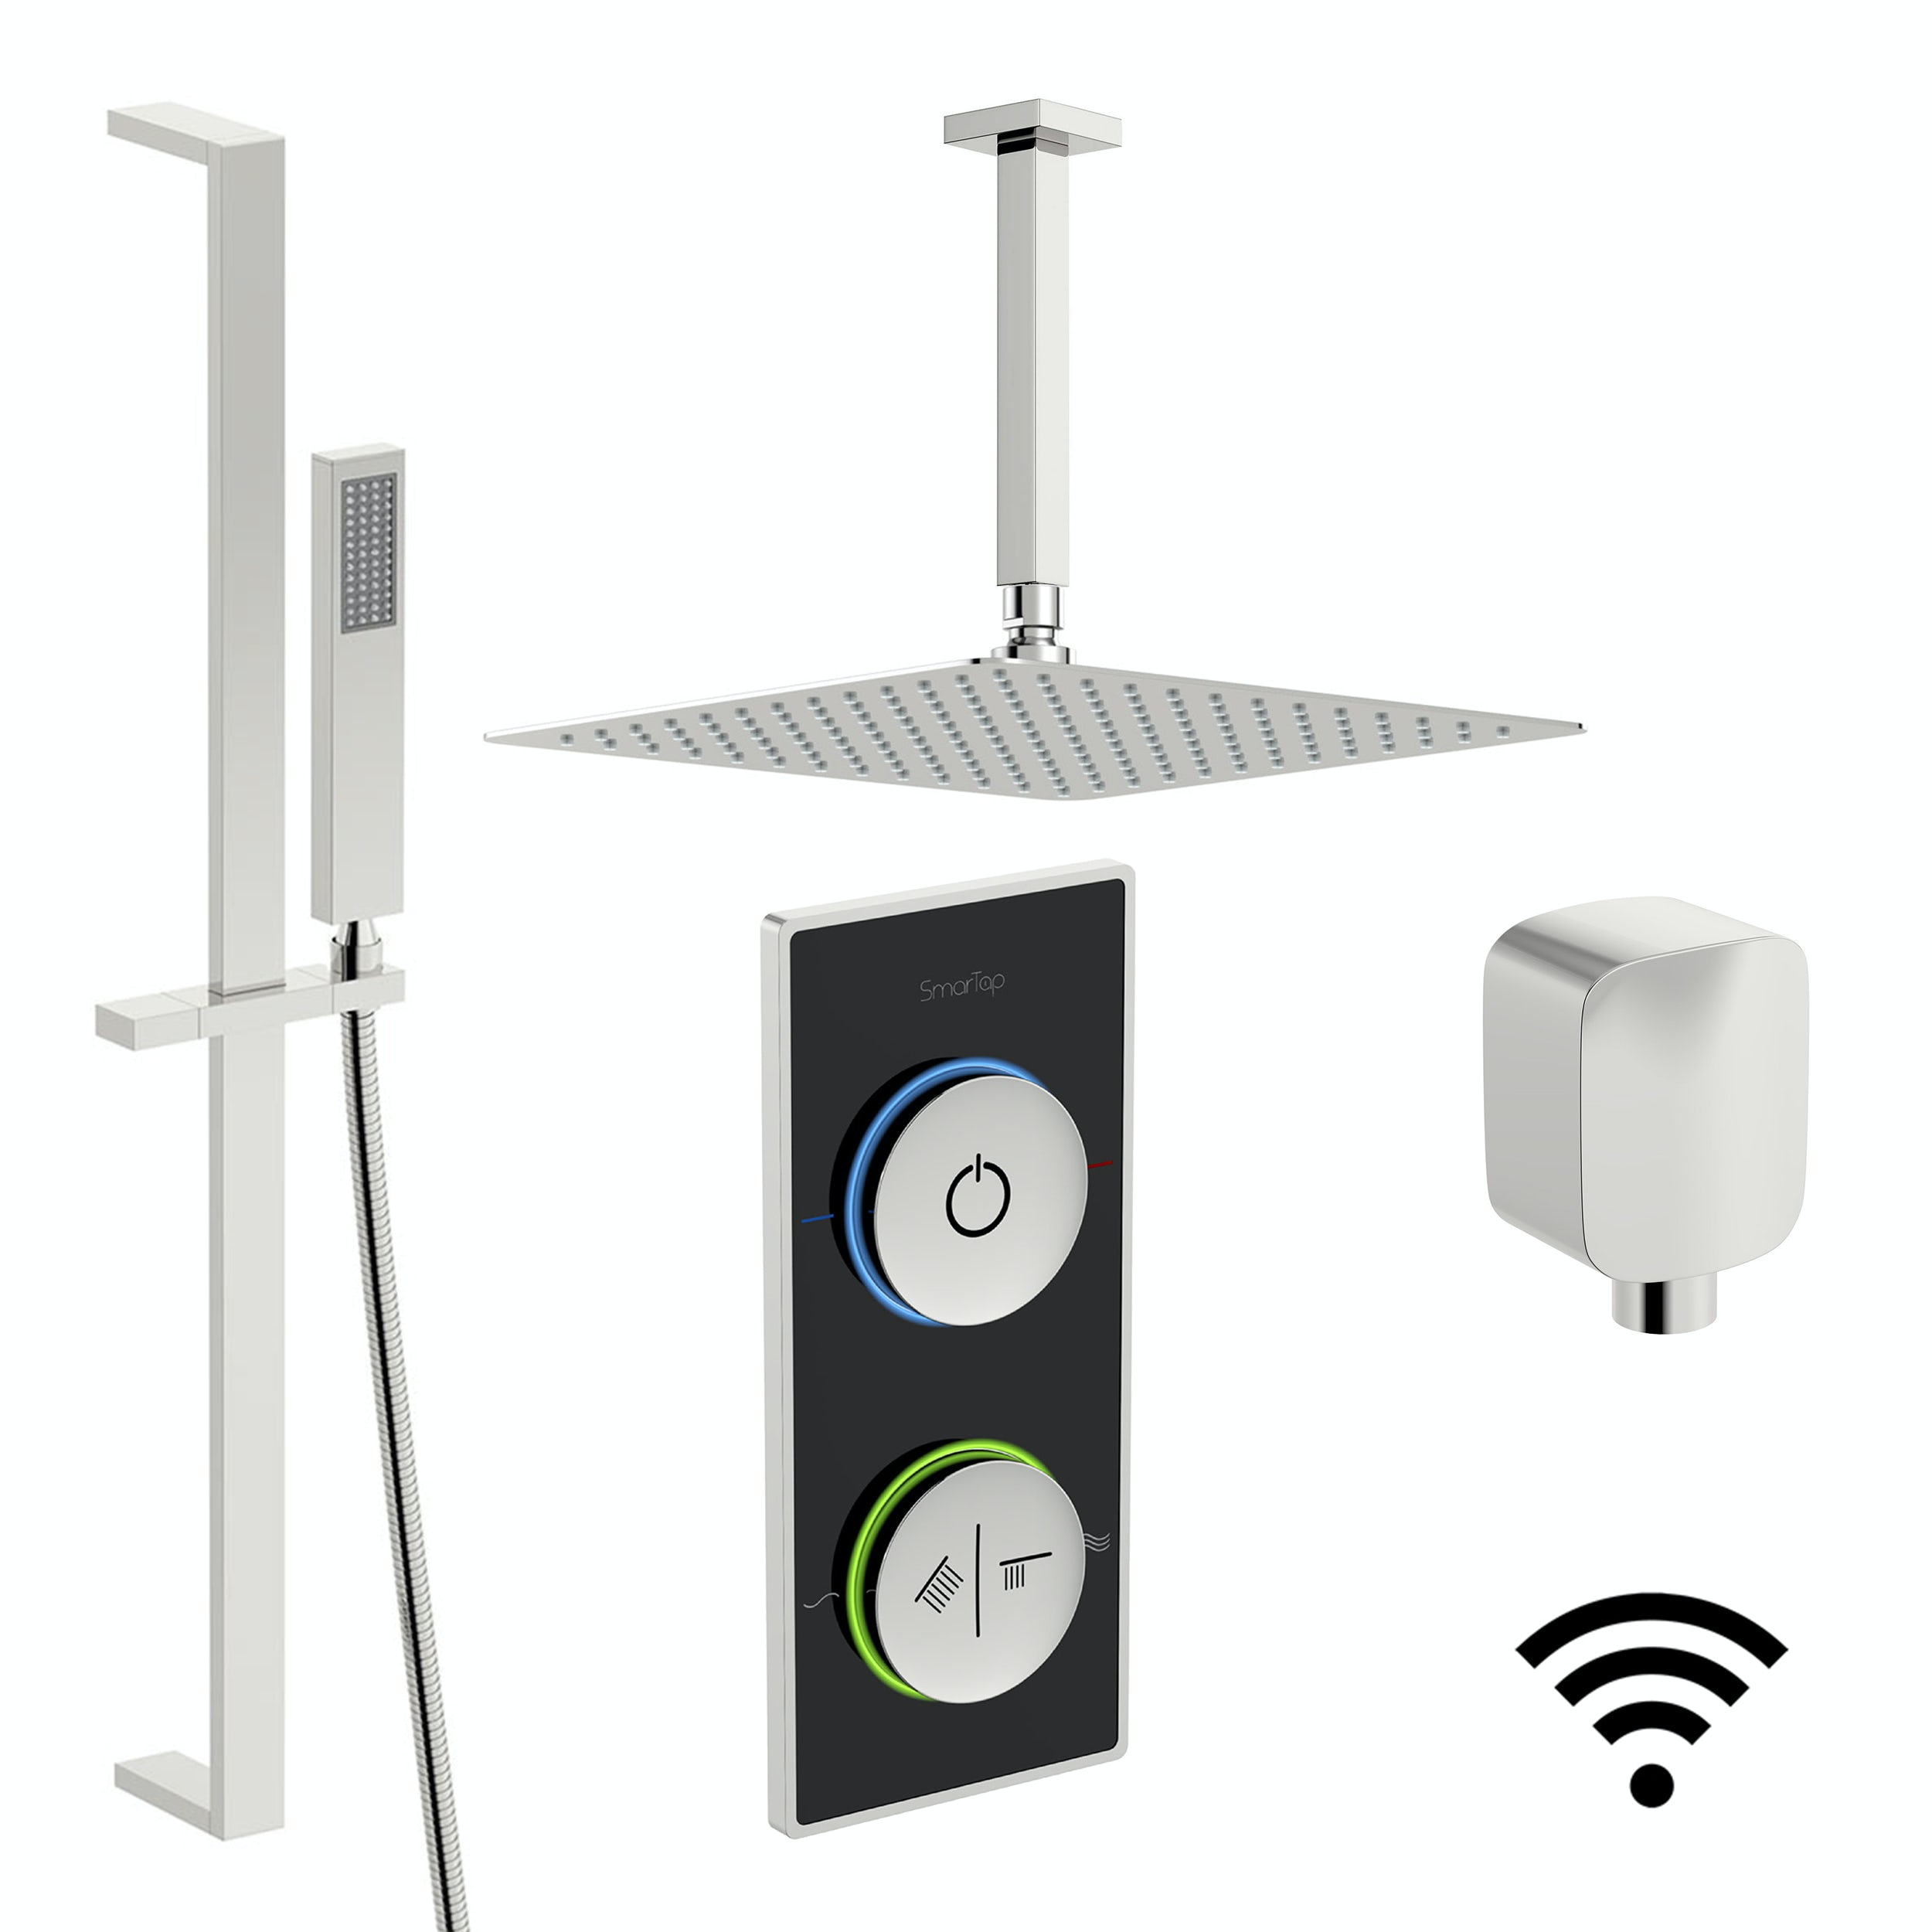 SmarTap black smart shower system with square slider rail and ceiling shower set